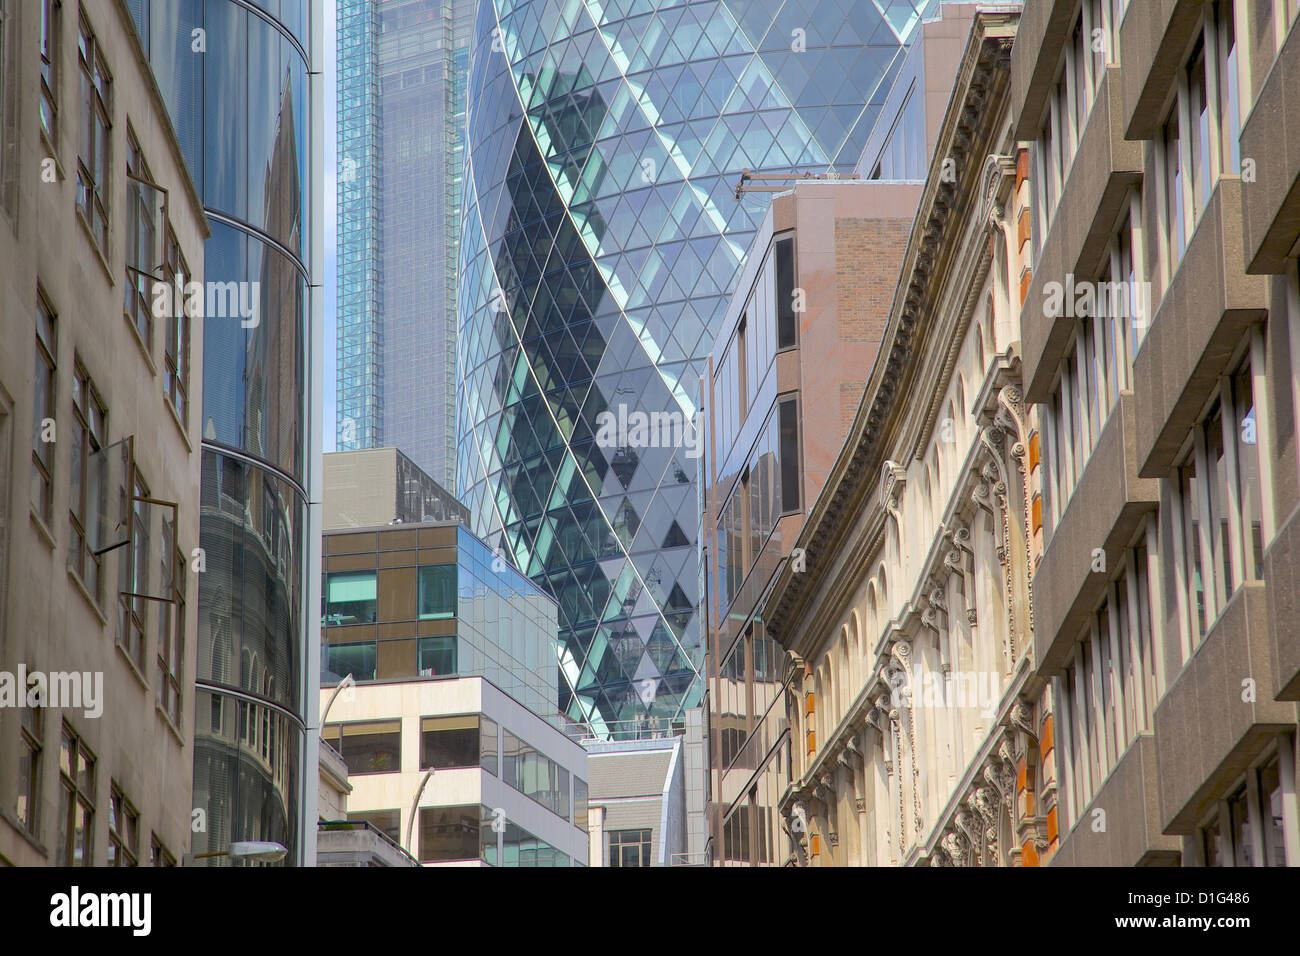 The Gherkin (Swiss Re Building), City of London, London, England, United Kingdom, Europe - Stock Image